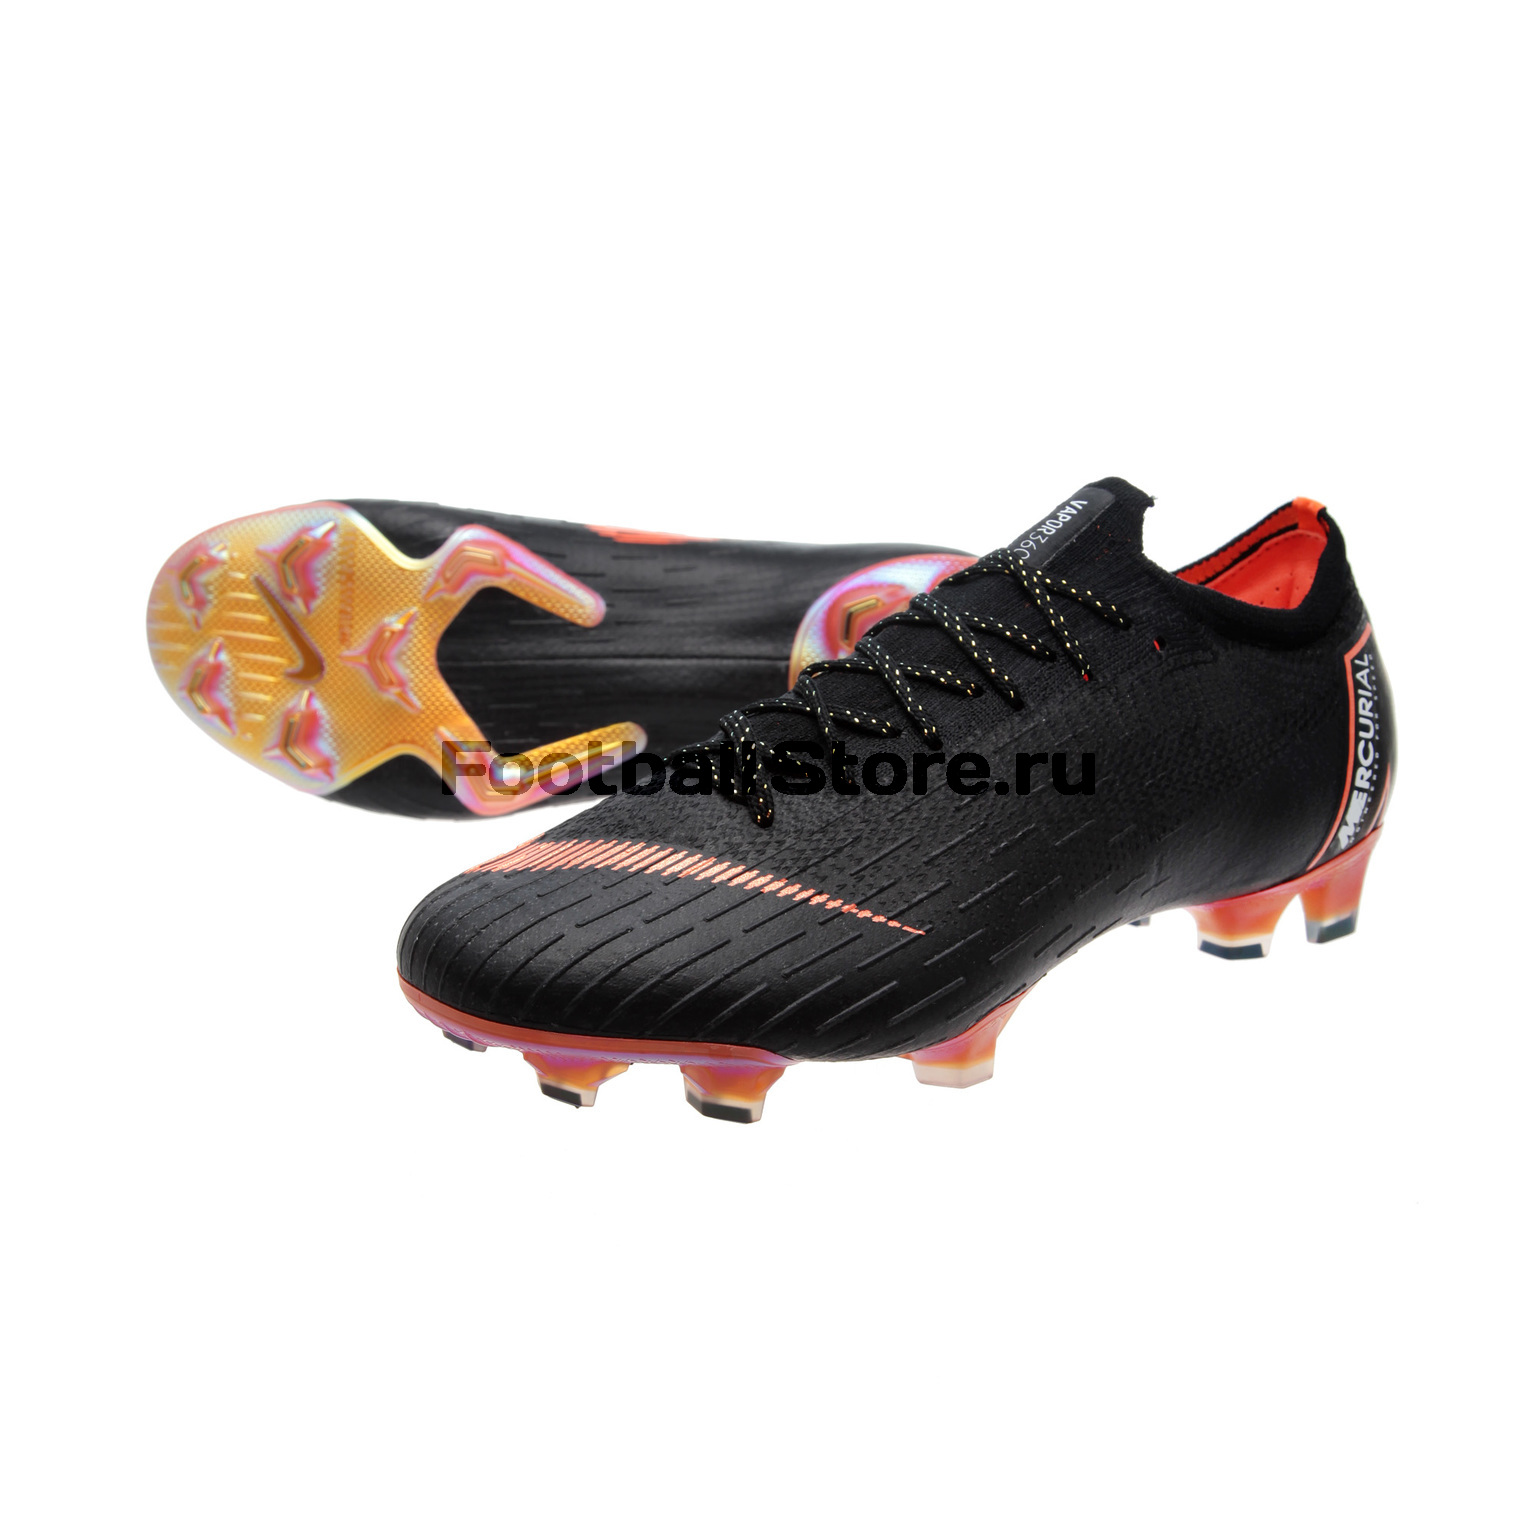 Бутсы Nike Vapor 12 Elite FG AH7380-081 бутсы nike бутсы jr mercurialx vapor xi ic